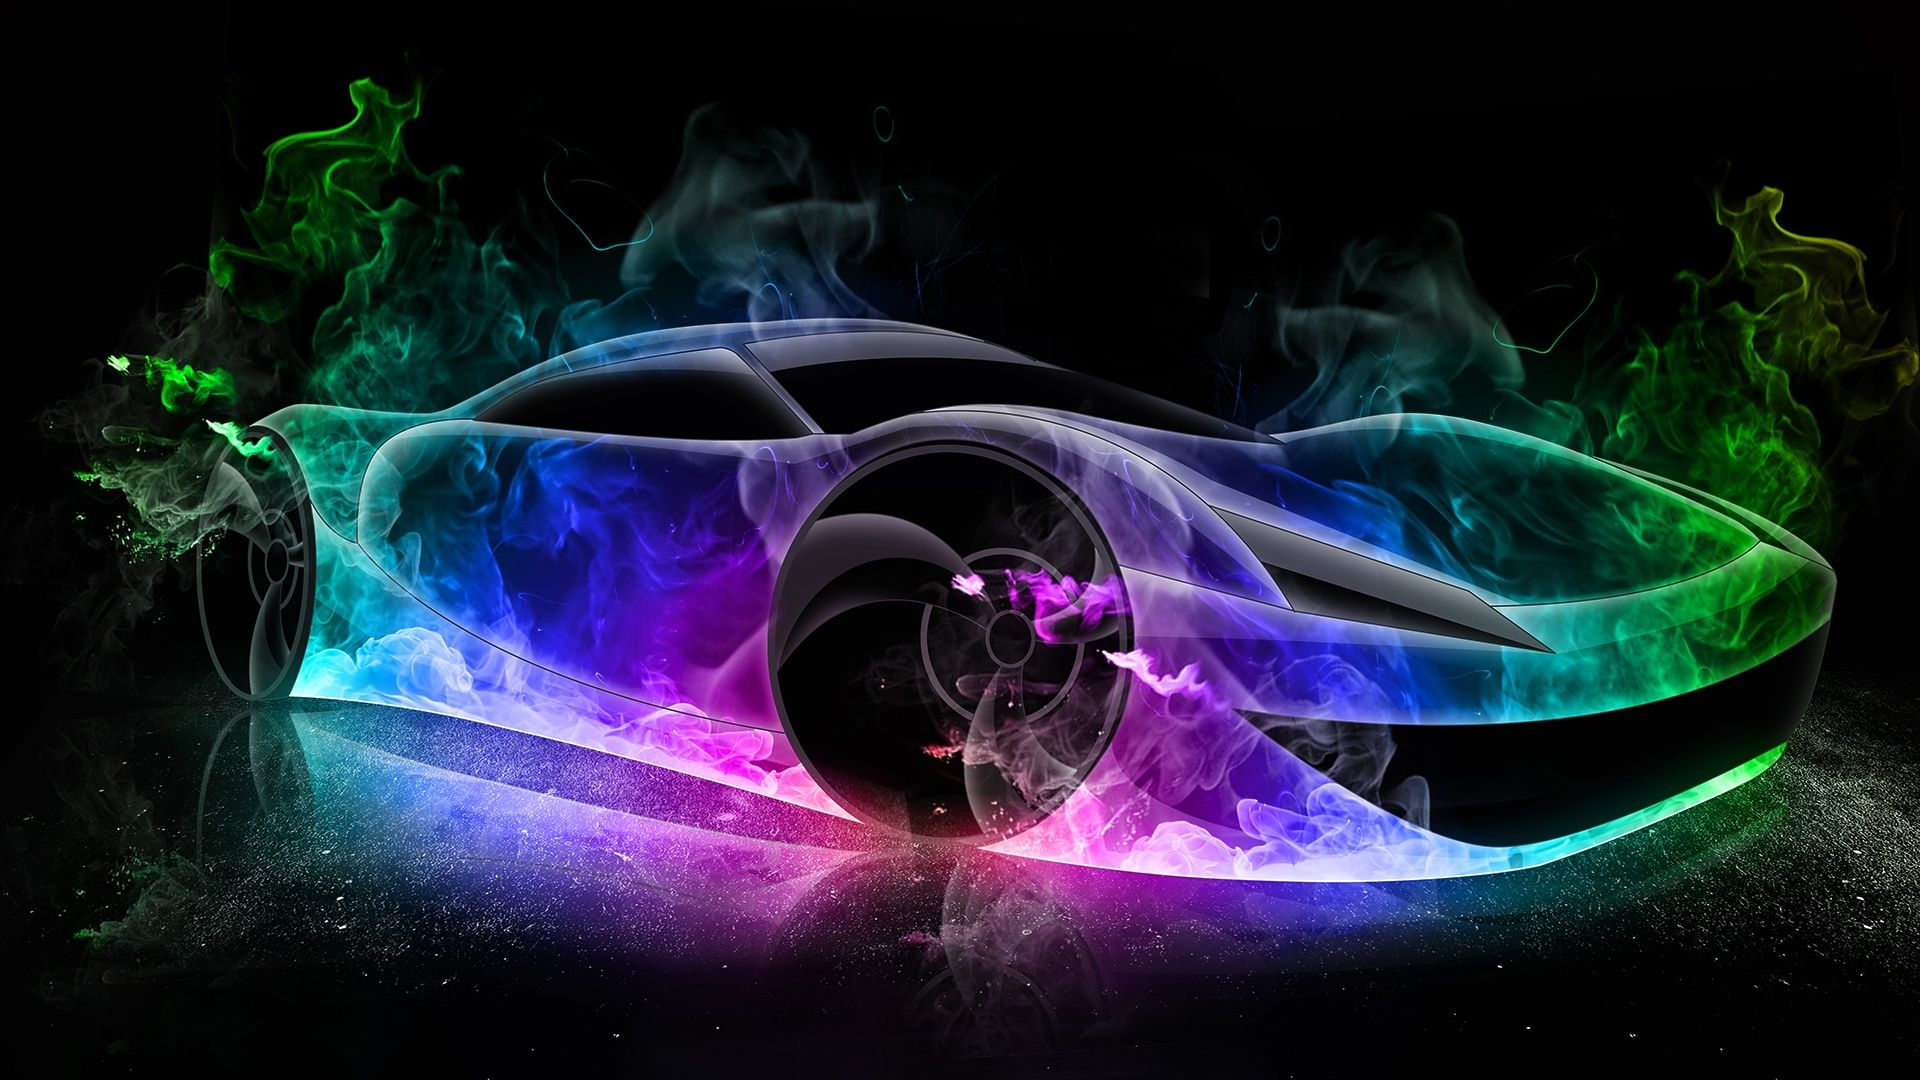 Colorful Cars Awesome Photo Wallpaper H1226s Bugatti Wallpapers Cool Wallpapers Cars Cool Cars